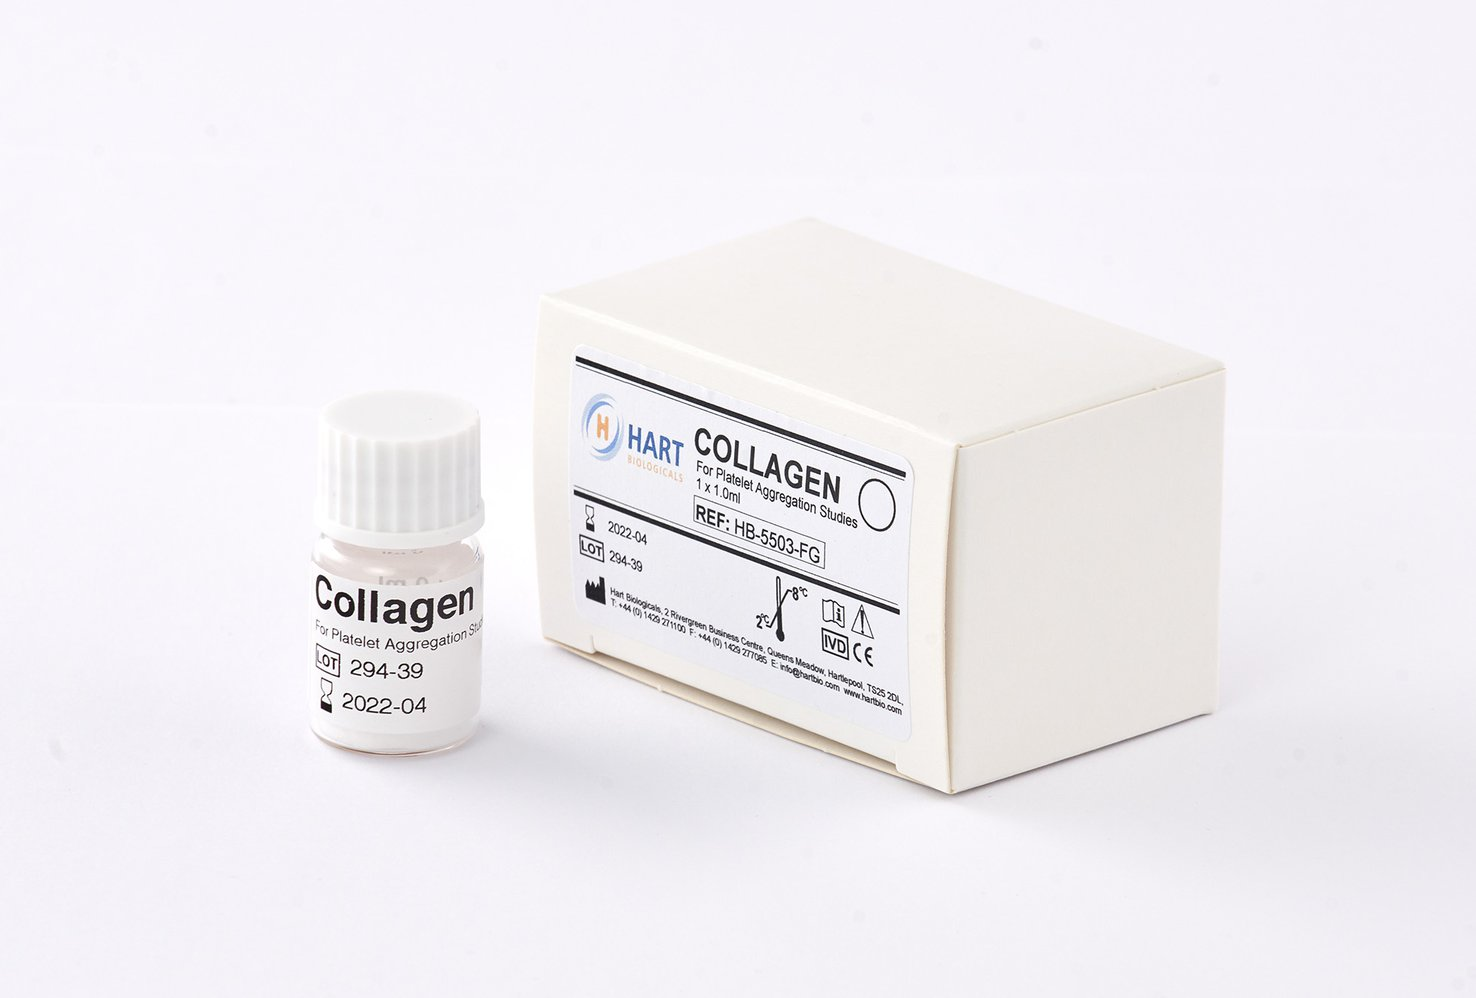 Collagen 100ug/ml - 2 x 1.0ml